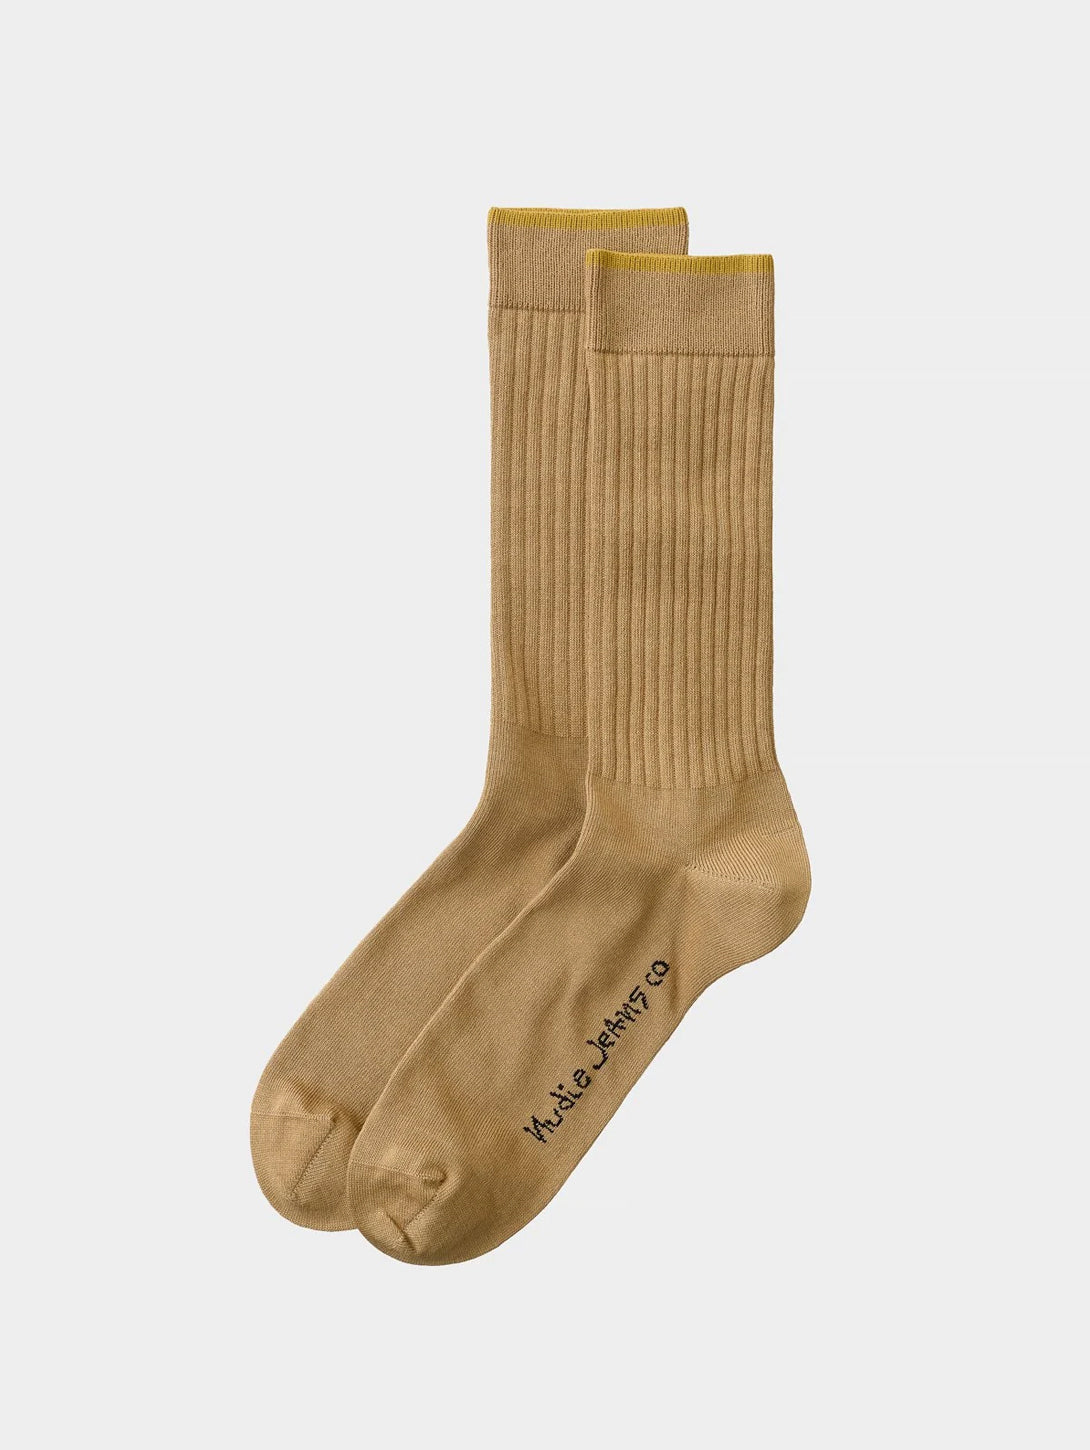 Gunnarsson Socks - Oat-Nudie Jeans-Over the Rainbow